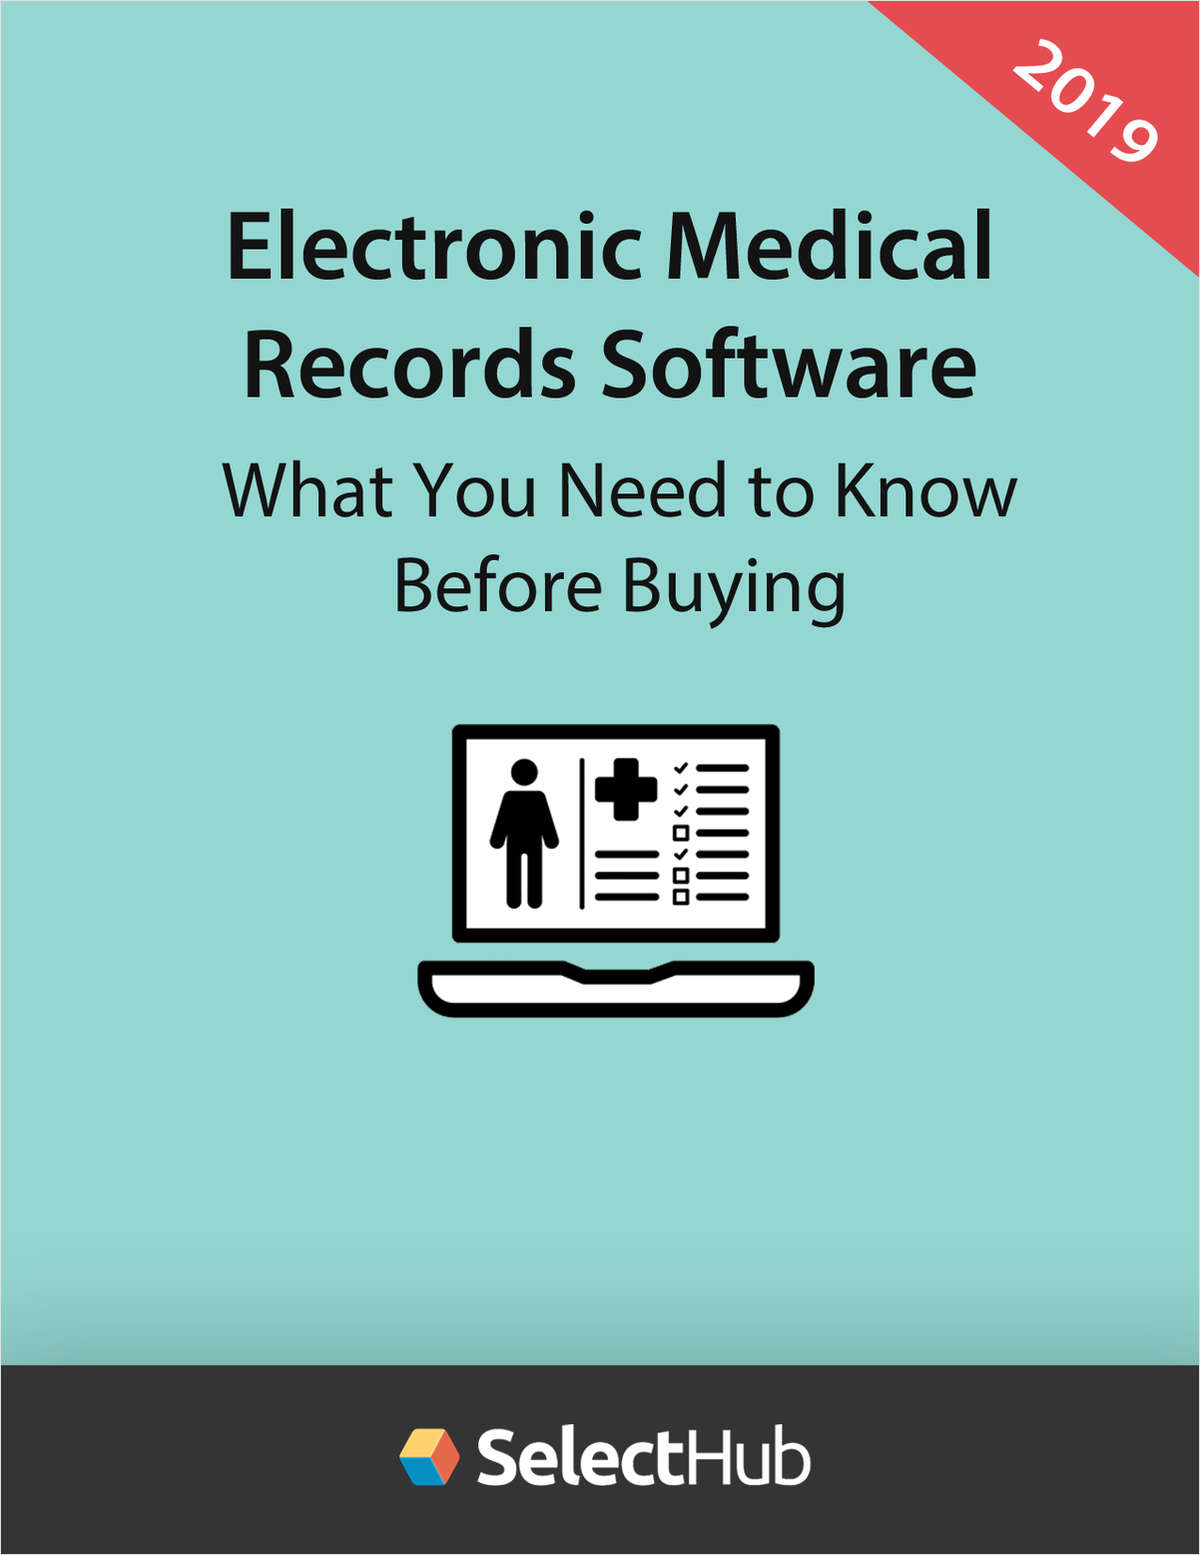 EMR Software: What You Need to Know Before Buying